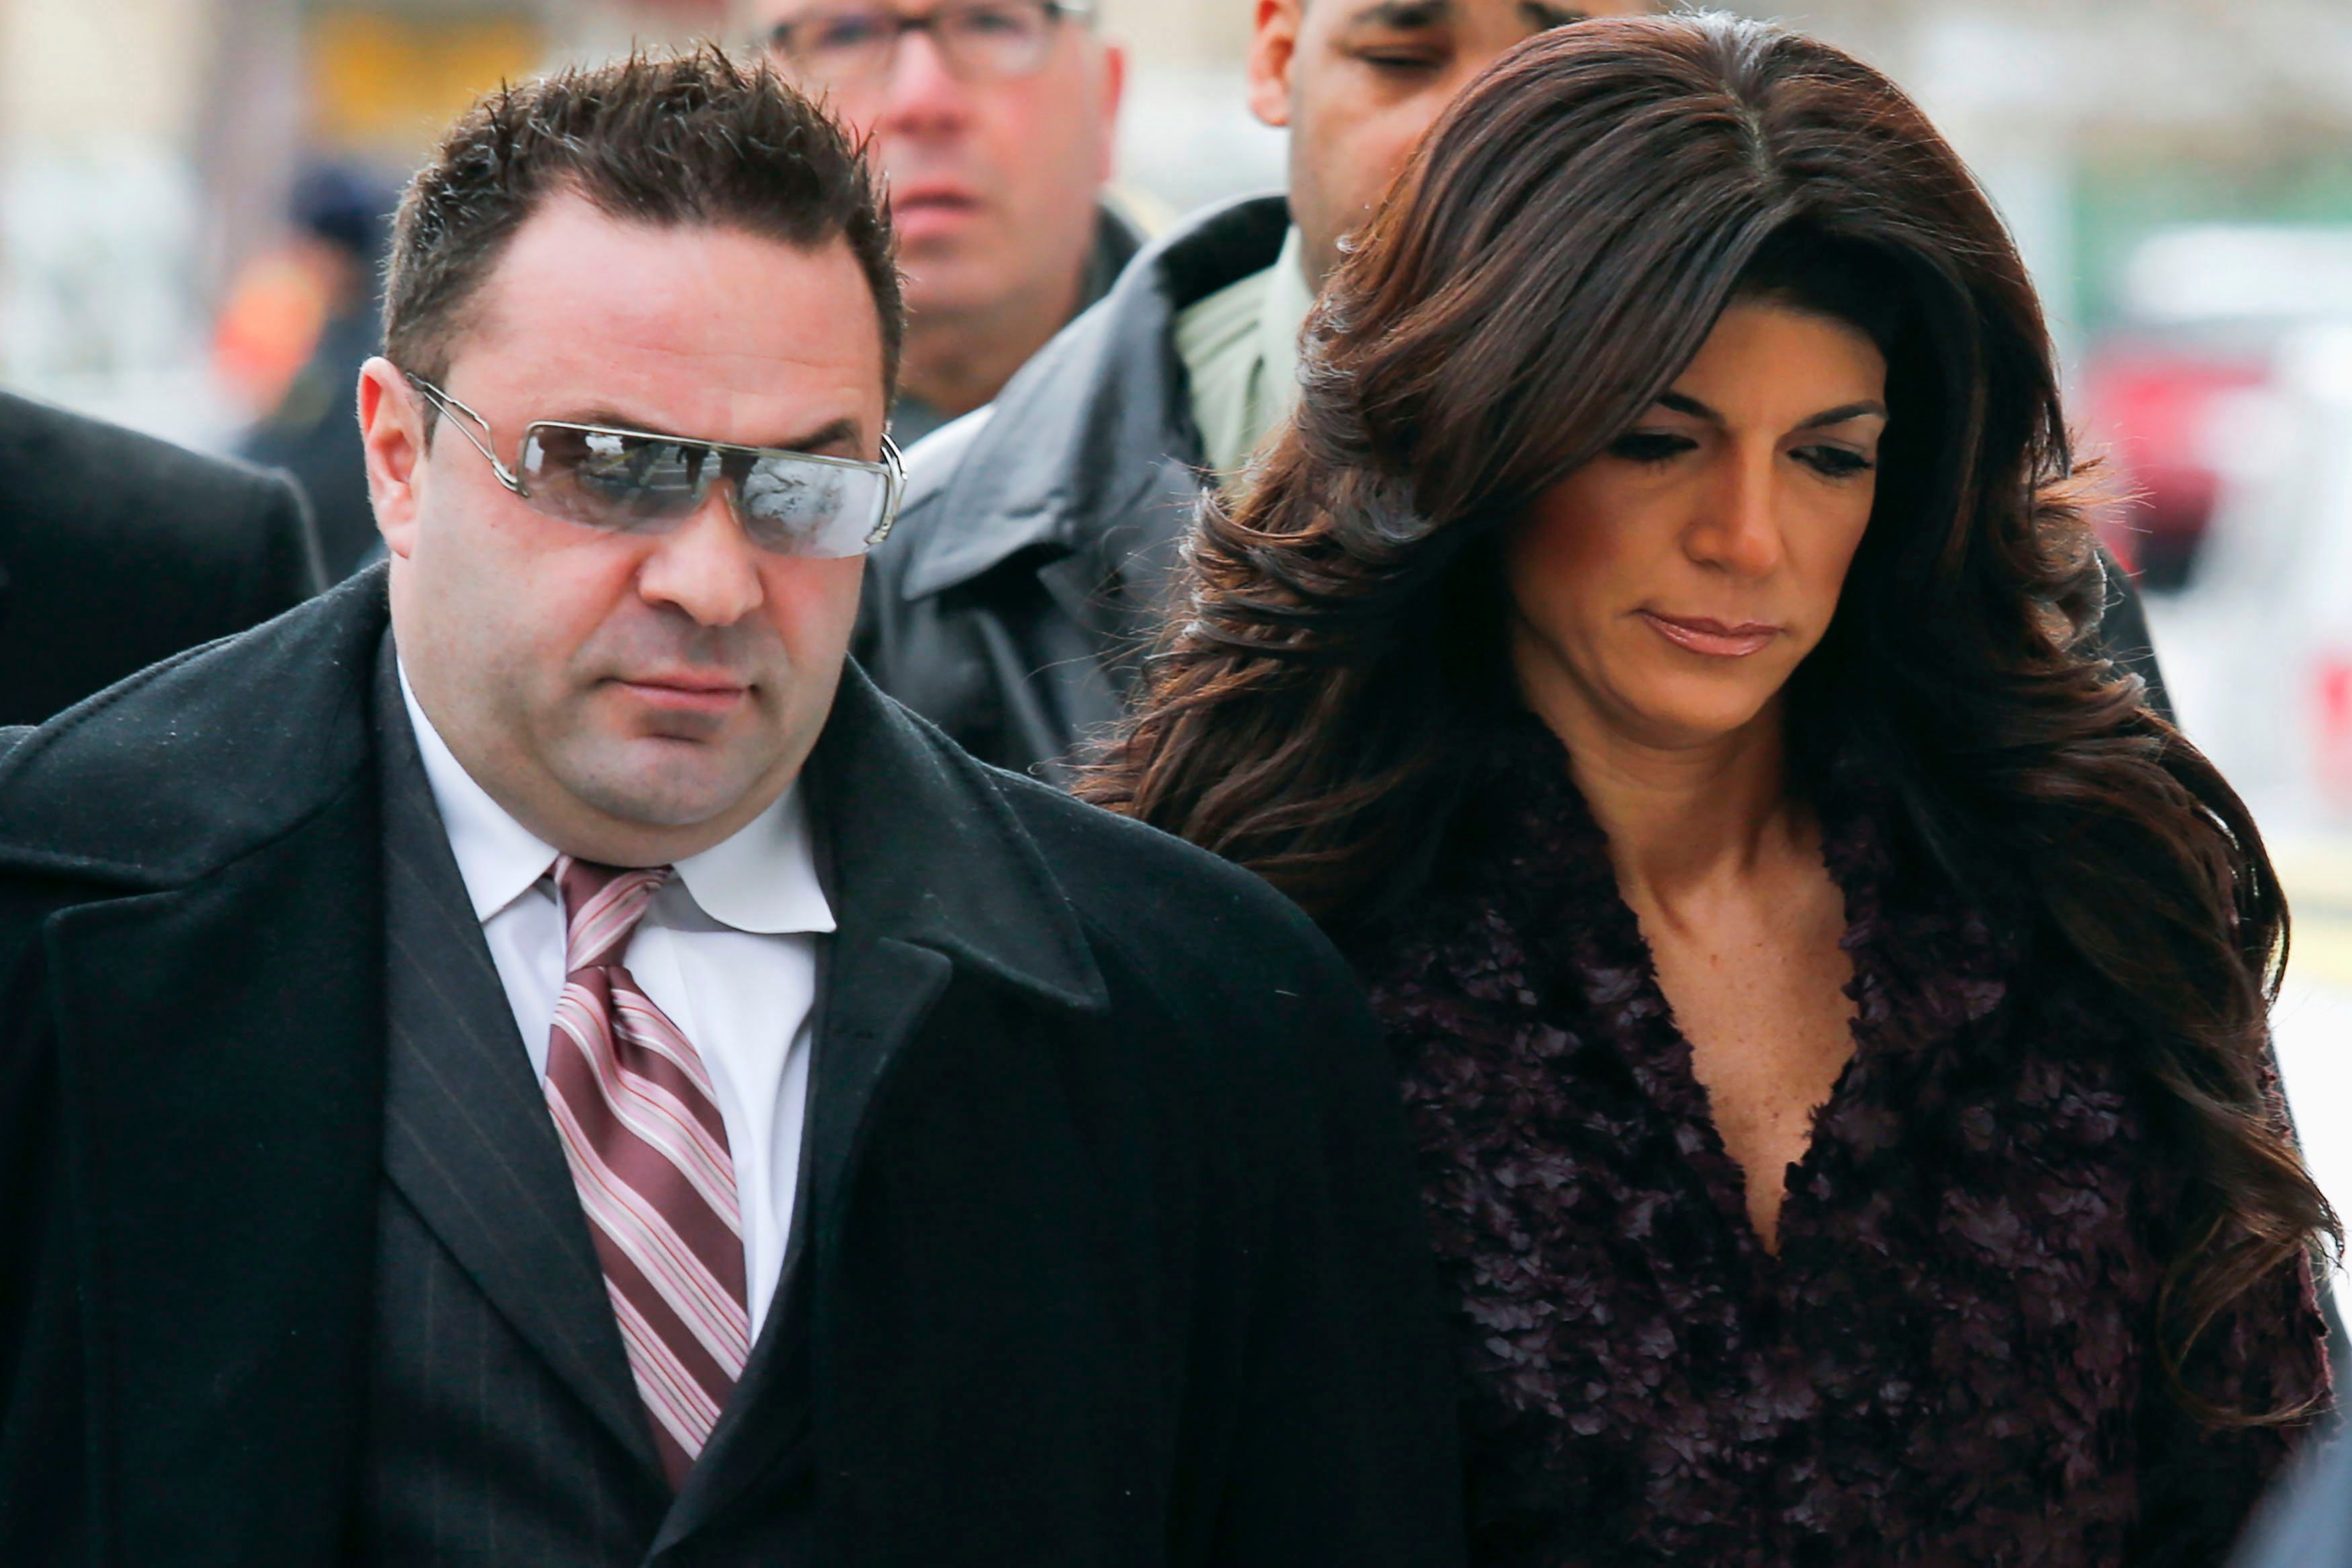 Teresa Giudice and her husband Joe Giudice arrive at the Federal Court in 2014.